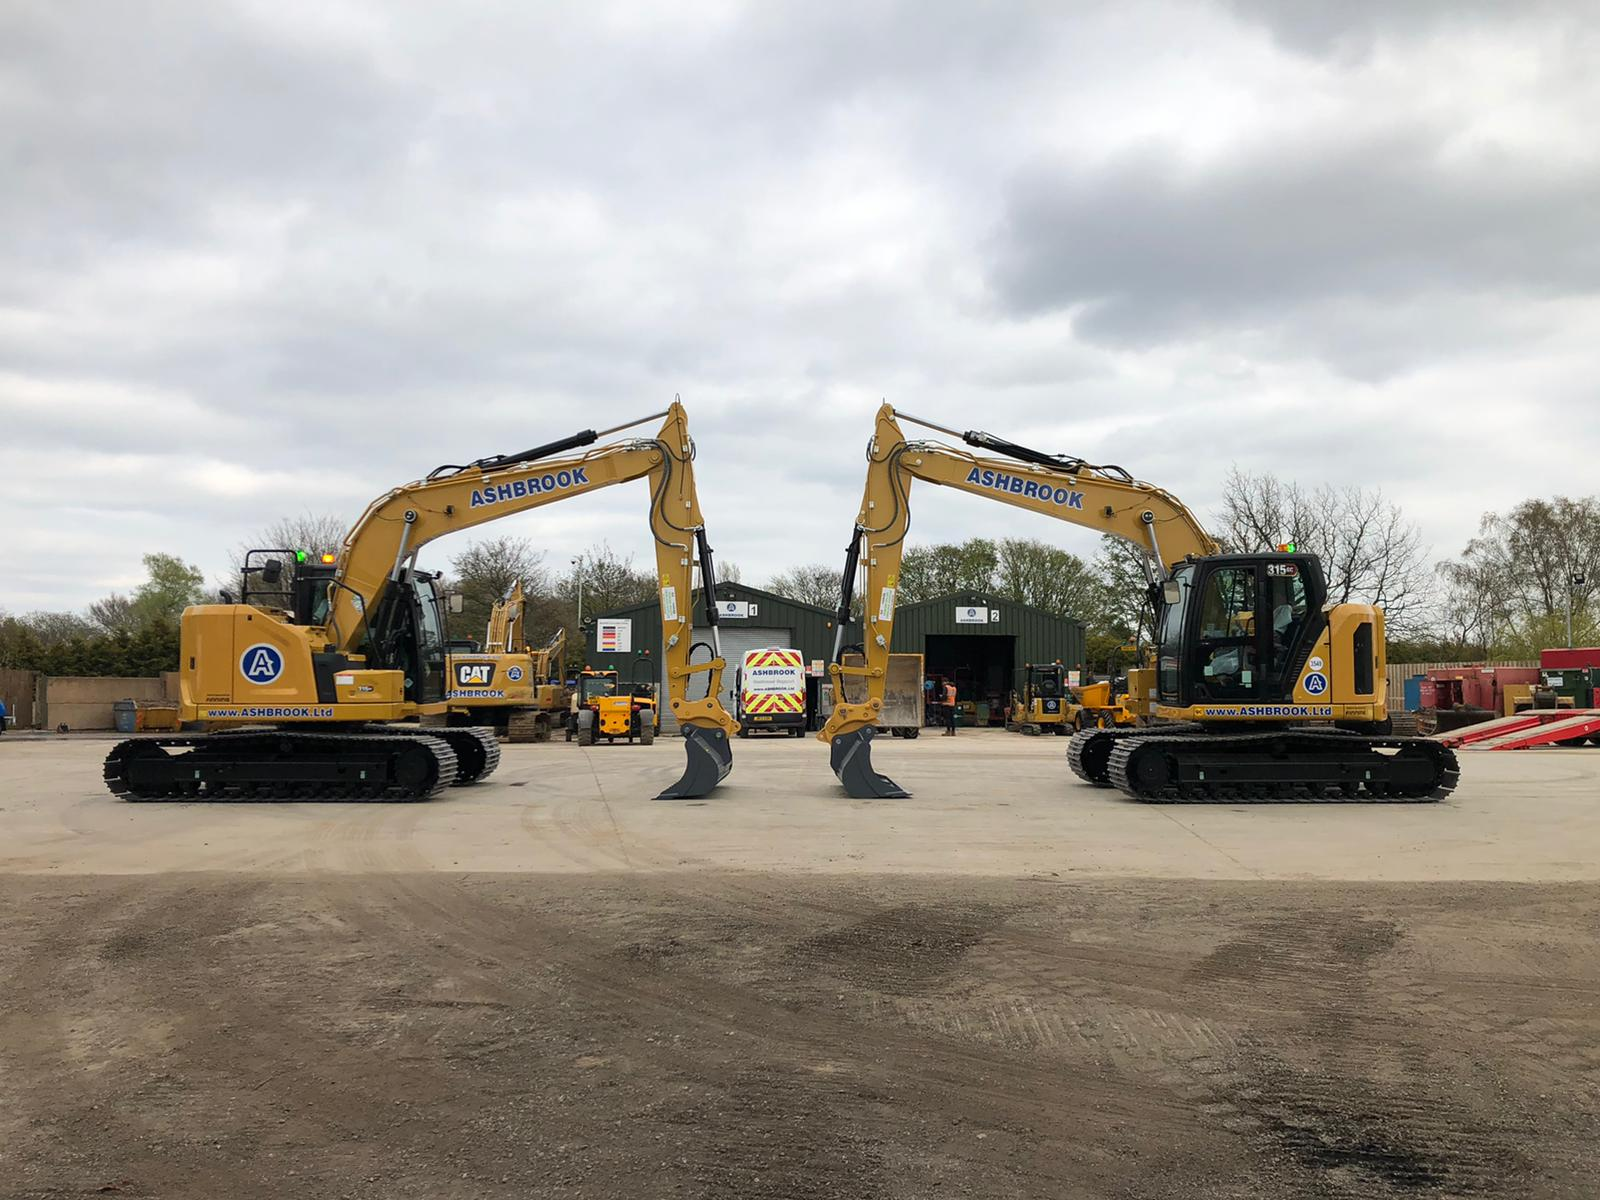 ASHBROOK is first in the UK to receive Cat® 315 GC ~ Leading plant hire firm invests in latest Cat® excavators ~